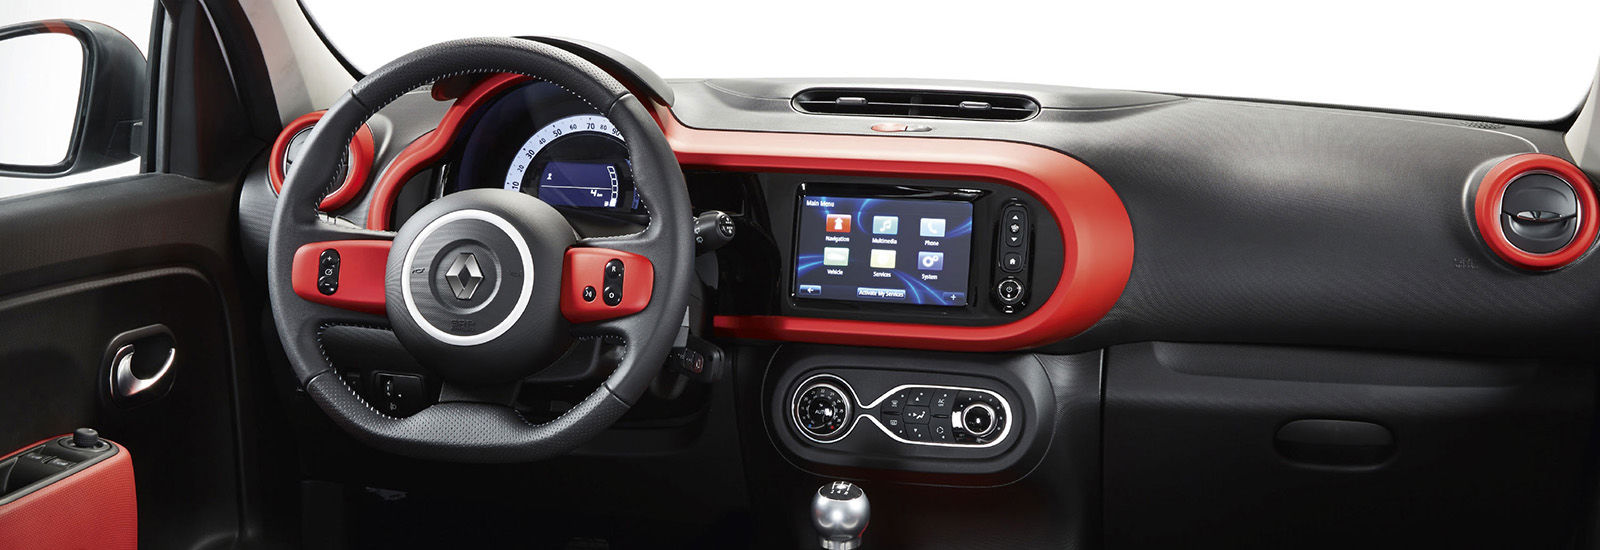 Awesome Twingo Interieur Pictures - Huis & Interieur Ideeën ...